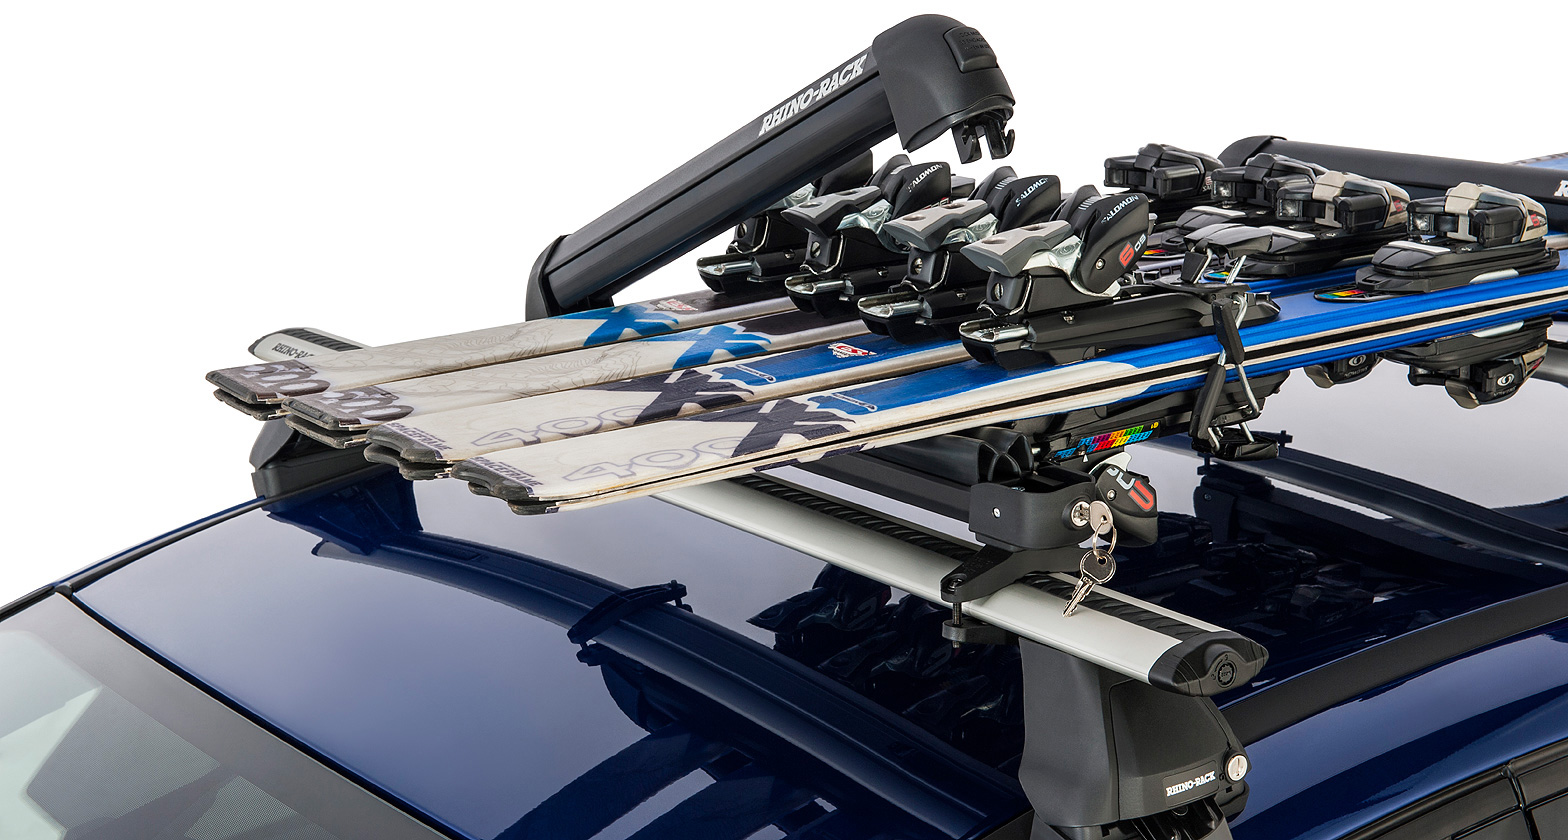 574 Ski And Snowboard Carrier 4 Skis Or 2 Snowboards